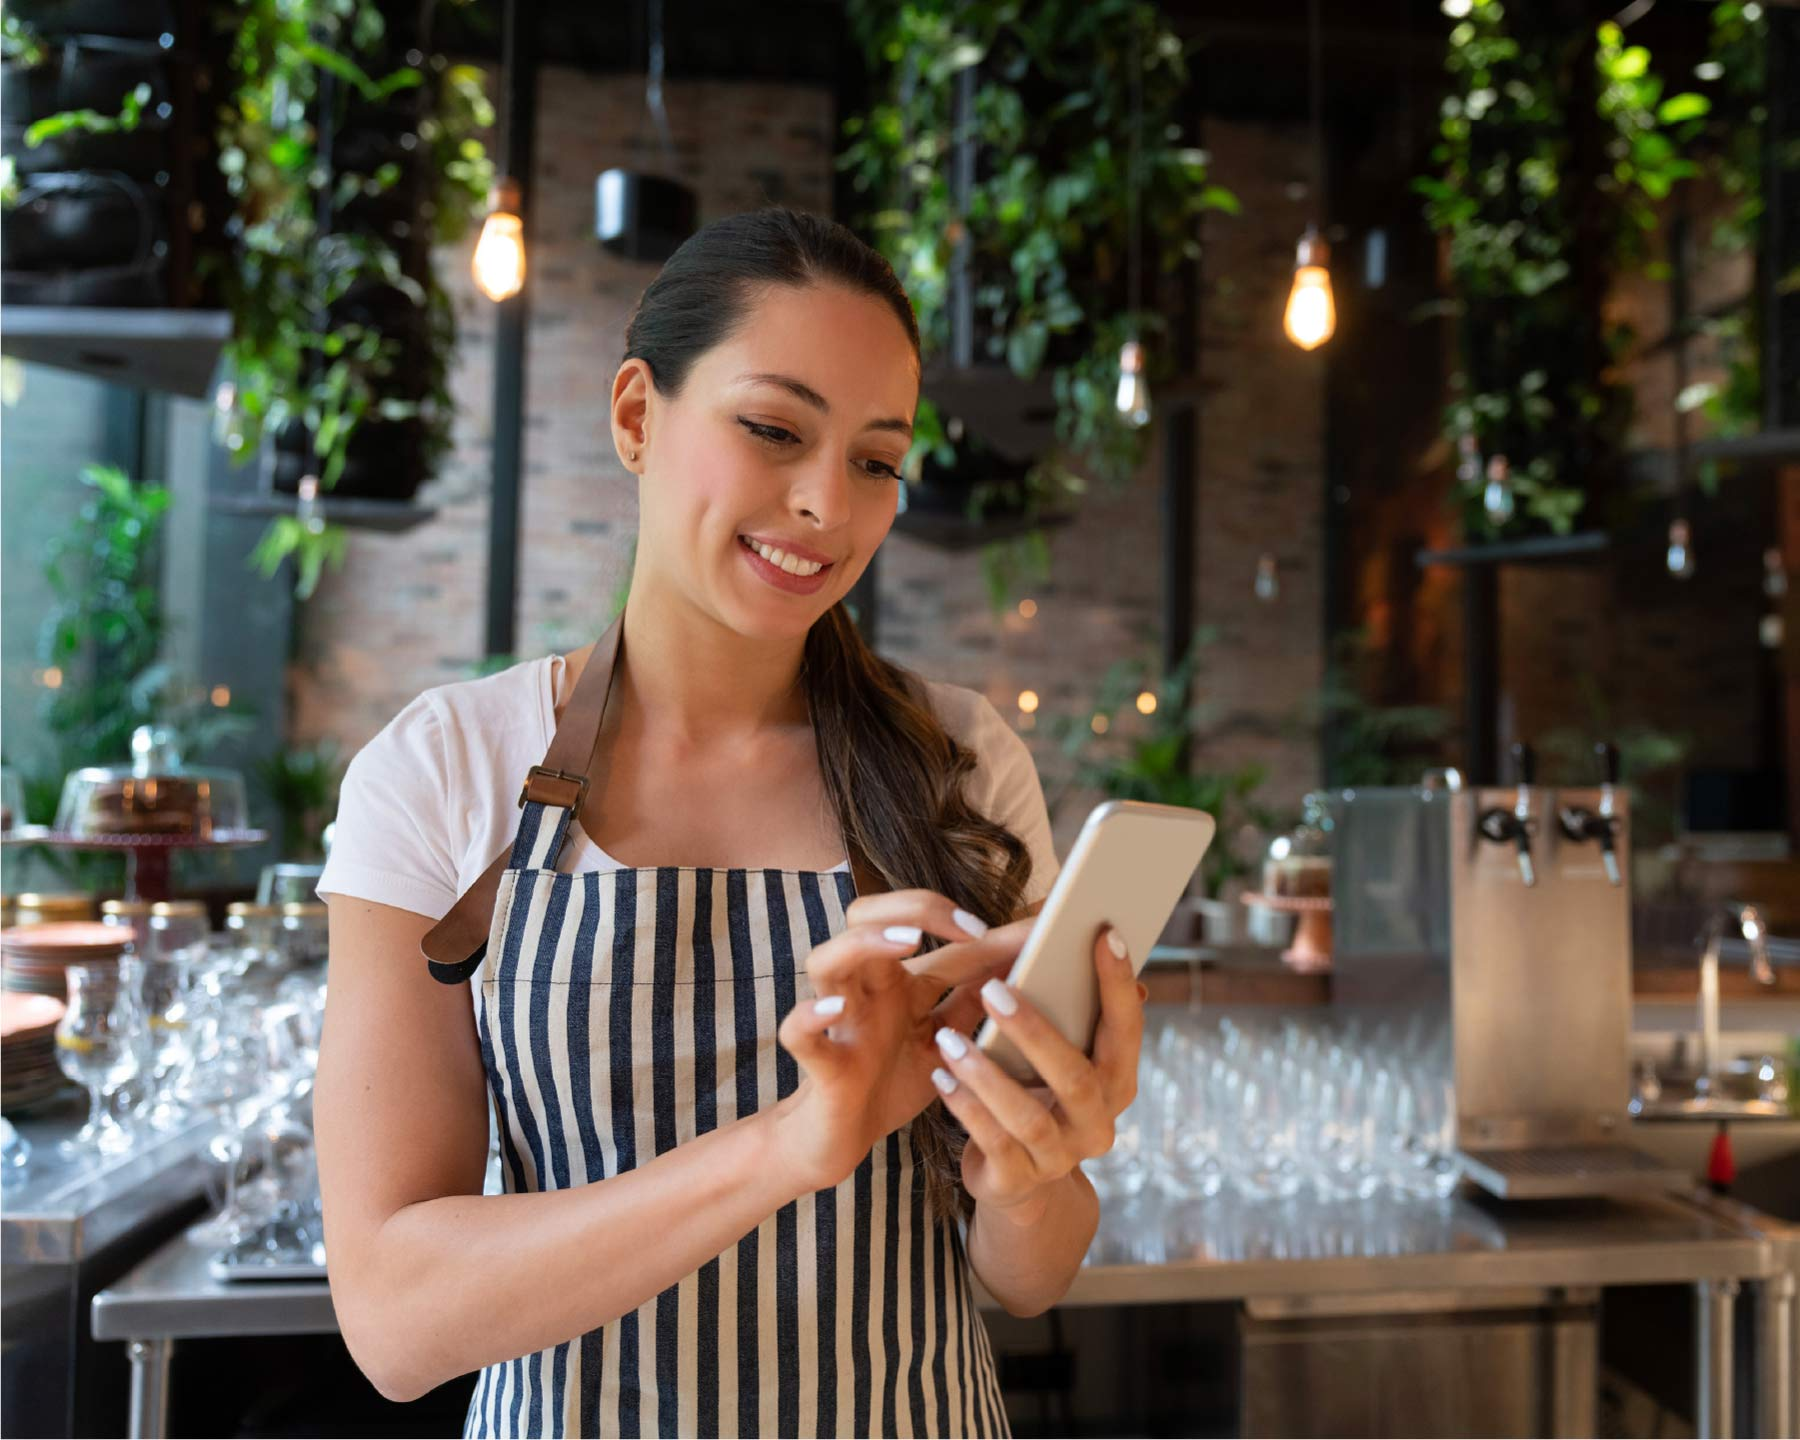 Gastronomer checks her Instagram account for important metrics like reach, followers and profile visits.